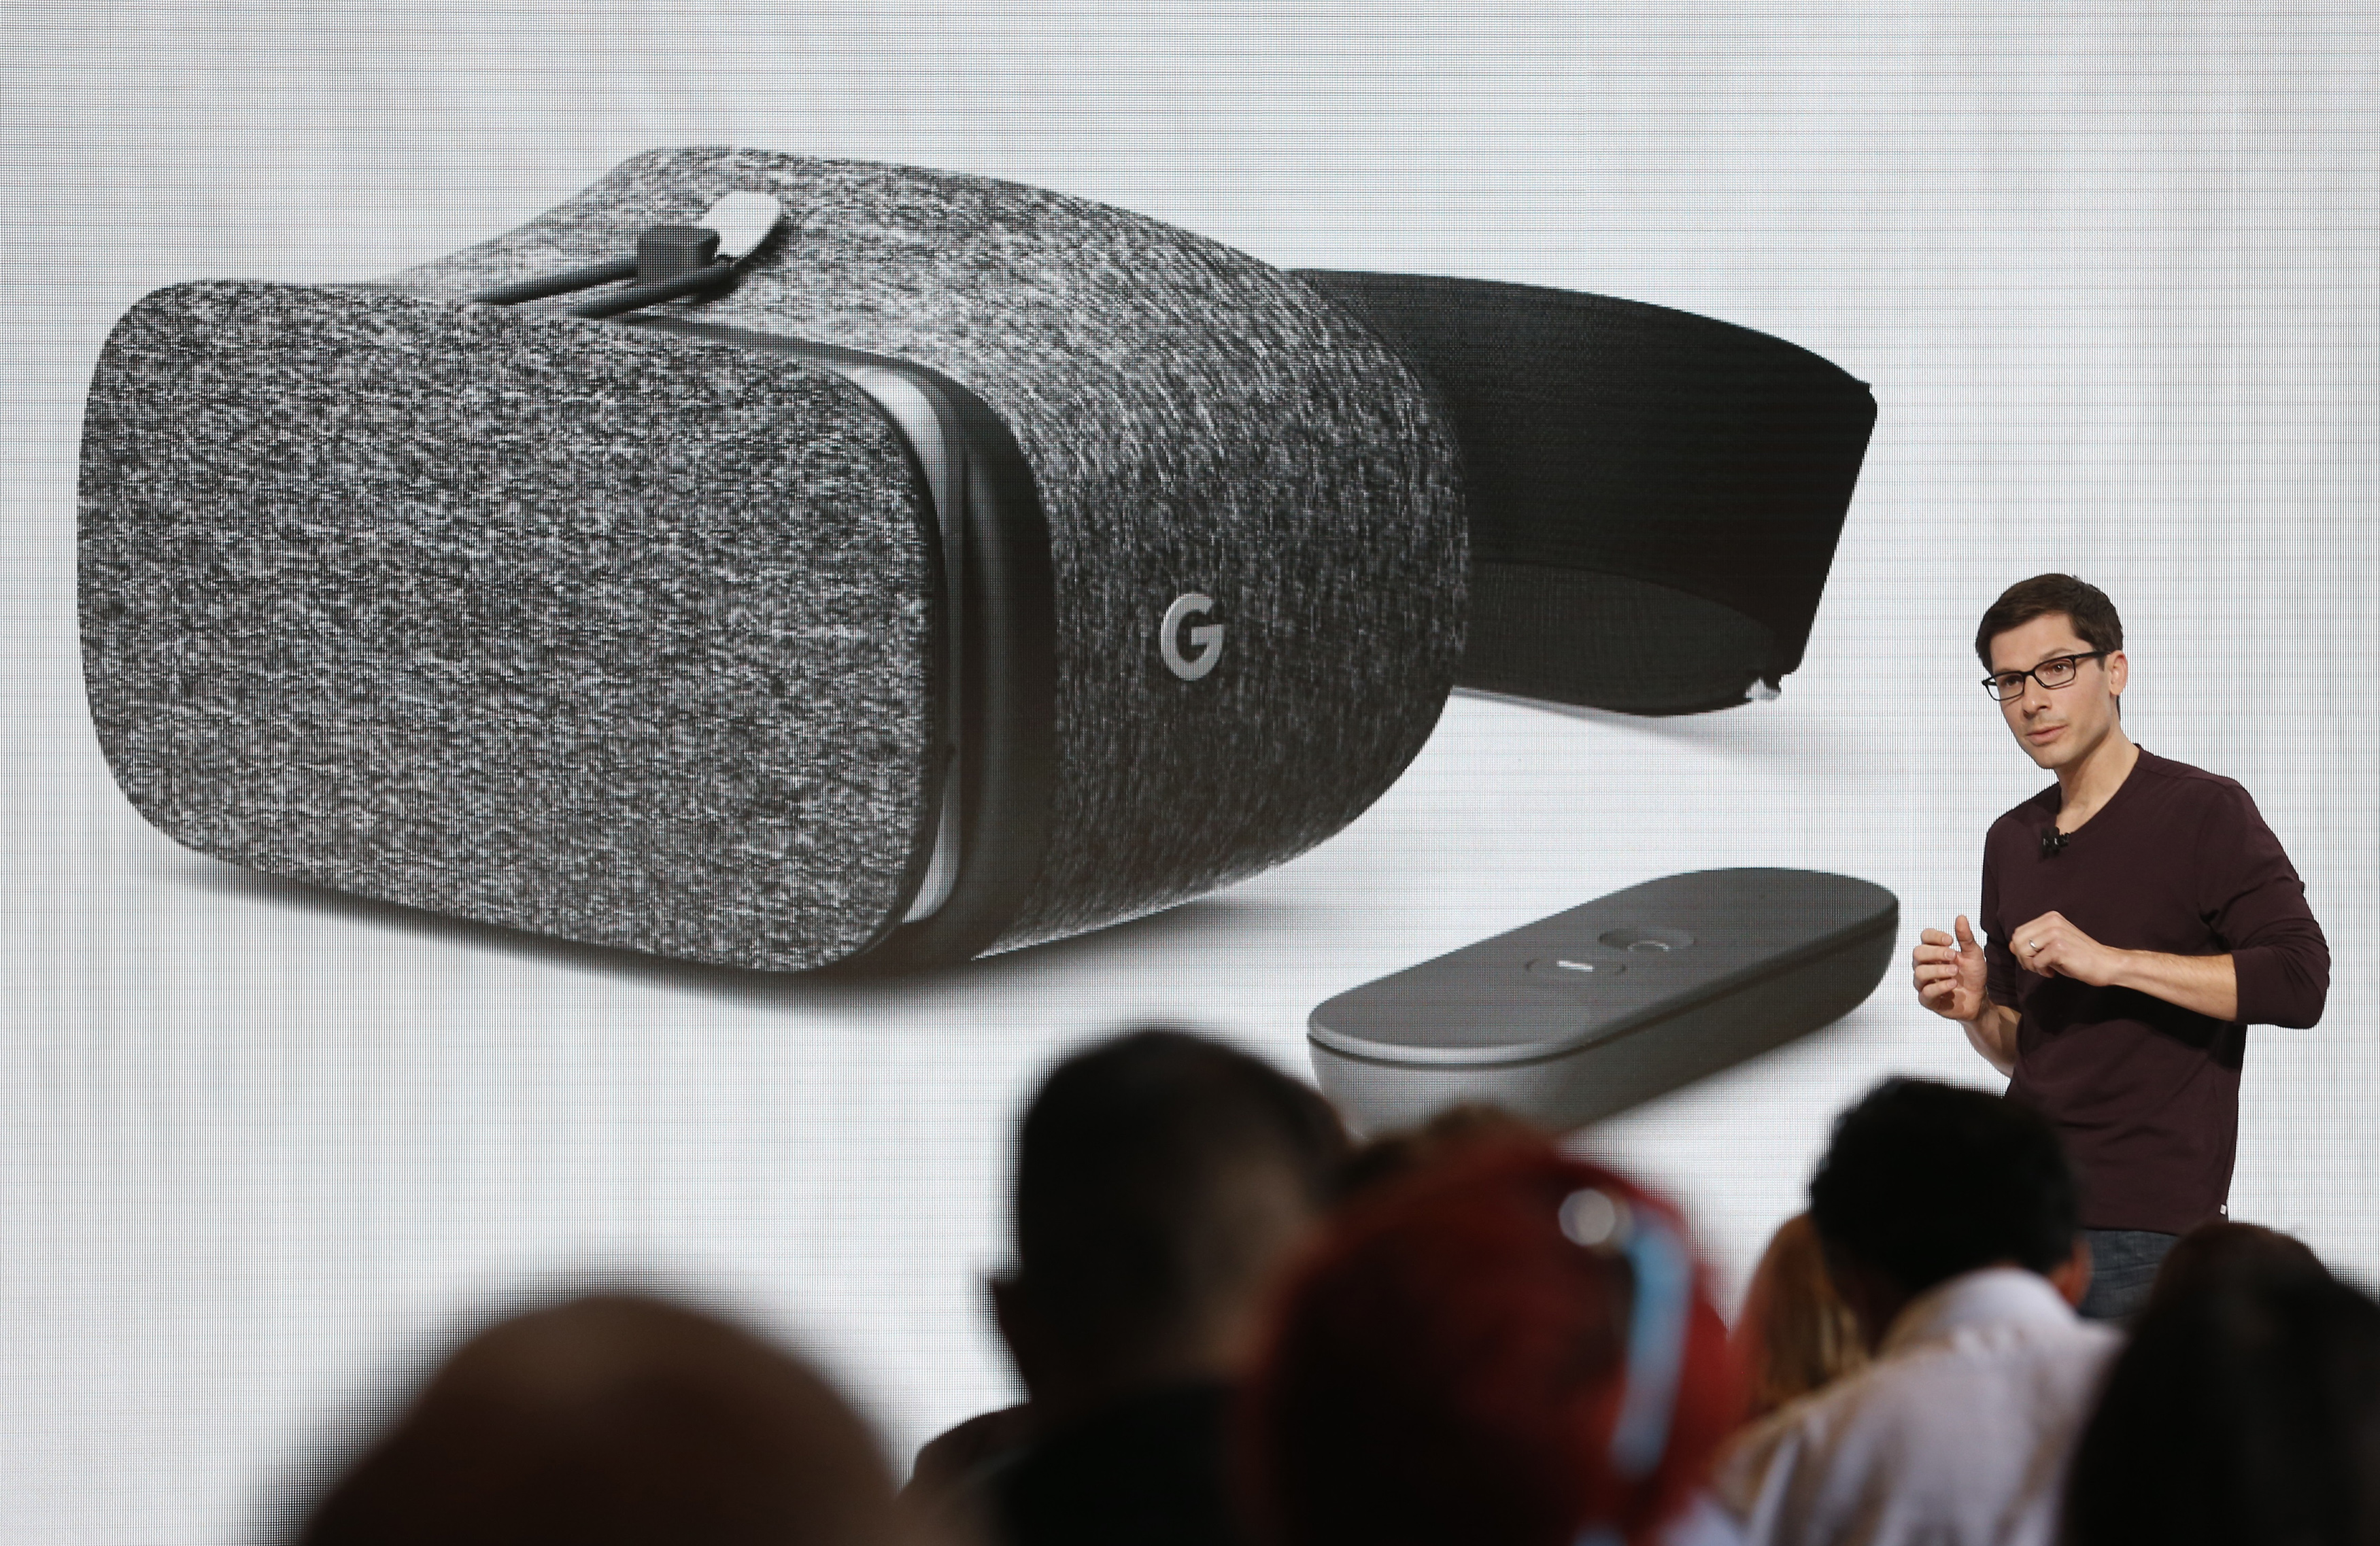 Clay Bavor introduces the Daydream View VR headset during the presentation of new Google hardware in San Francisco